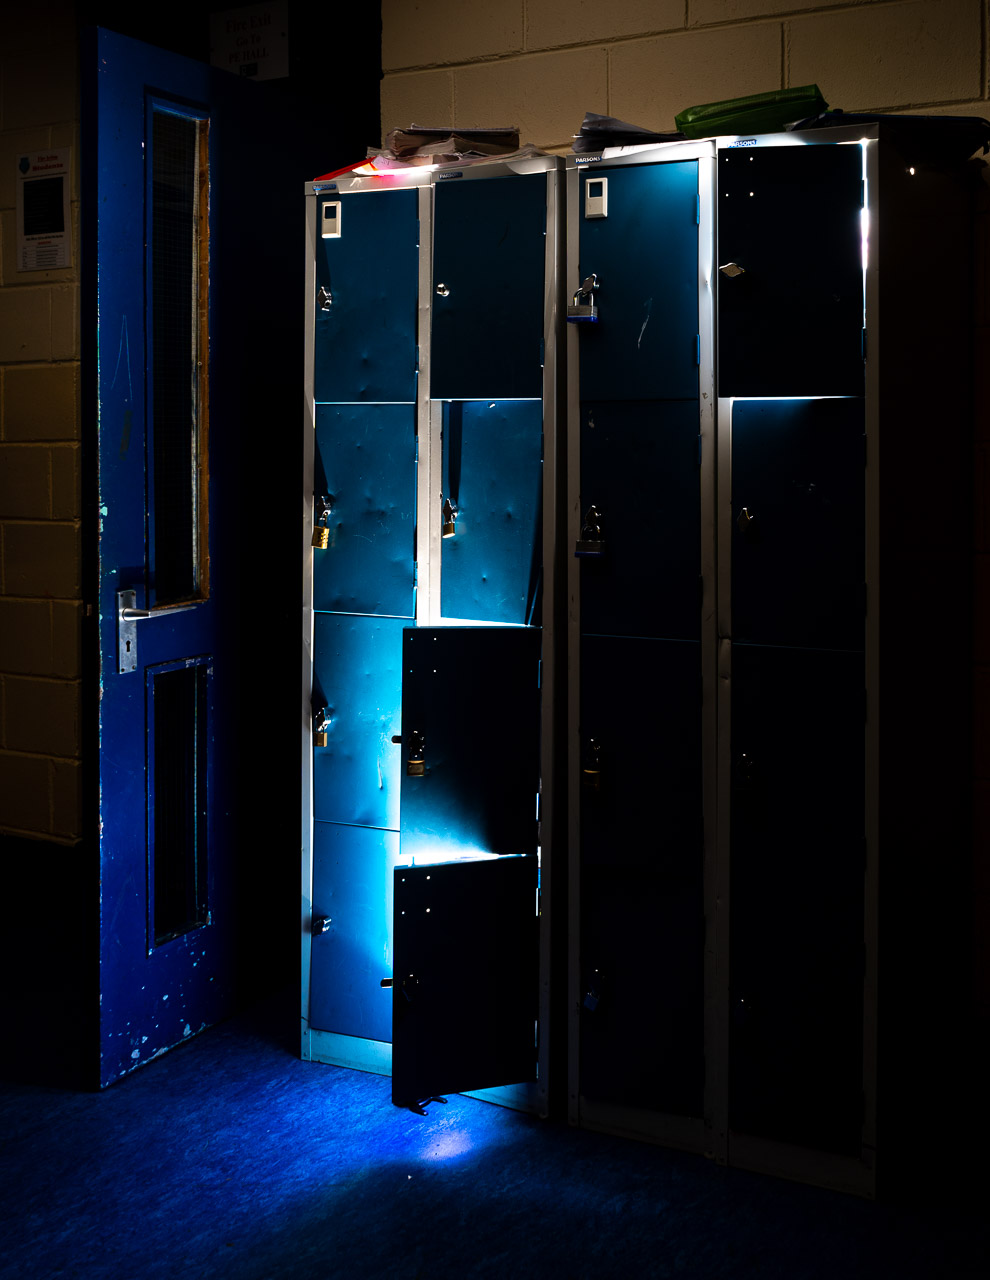 Light Escapes from Lockers